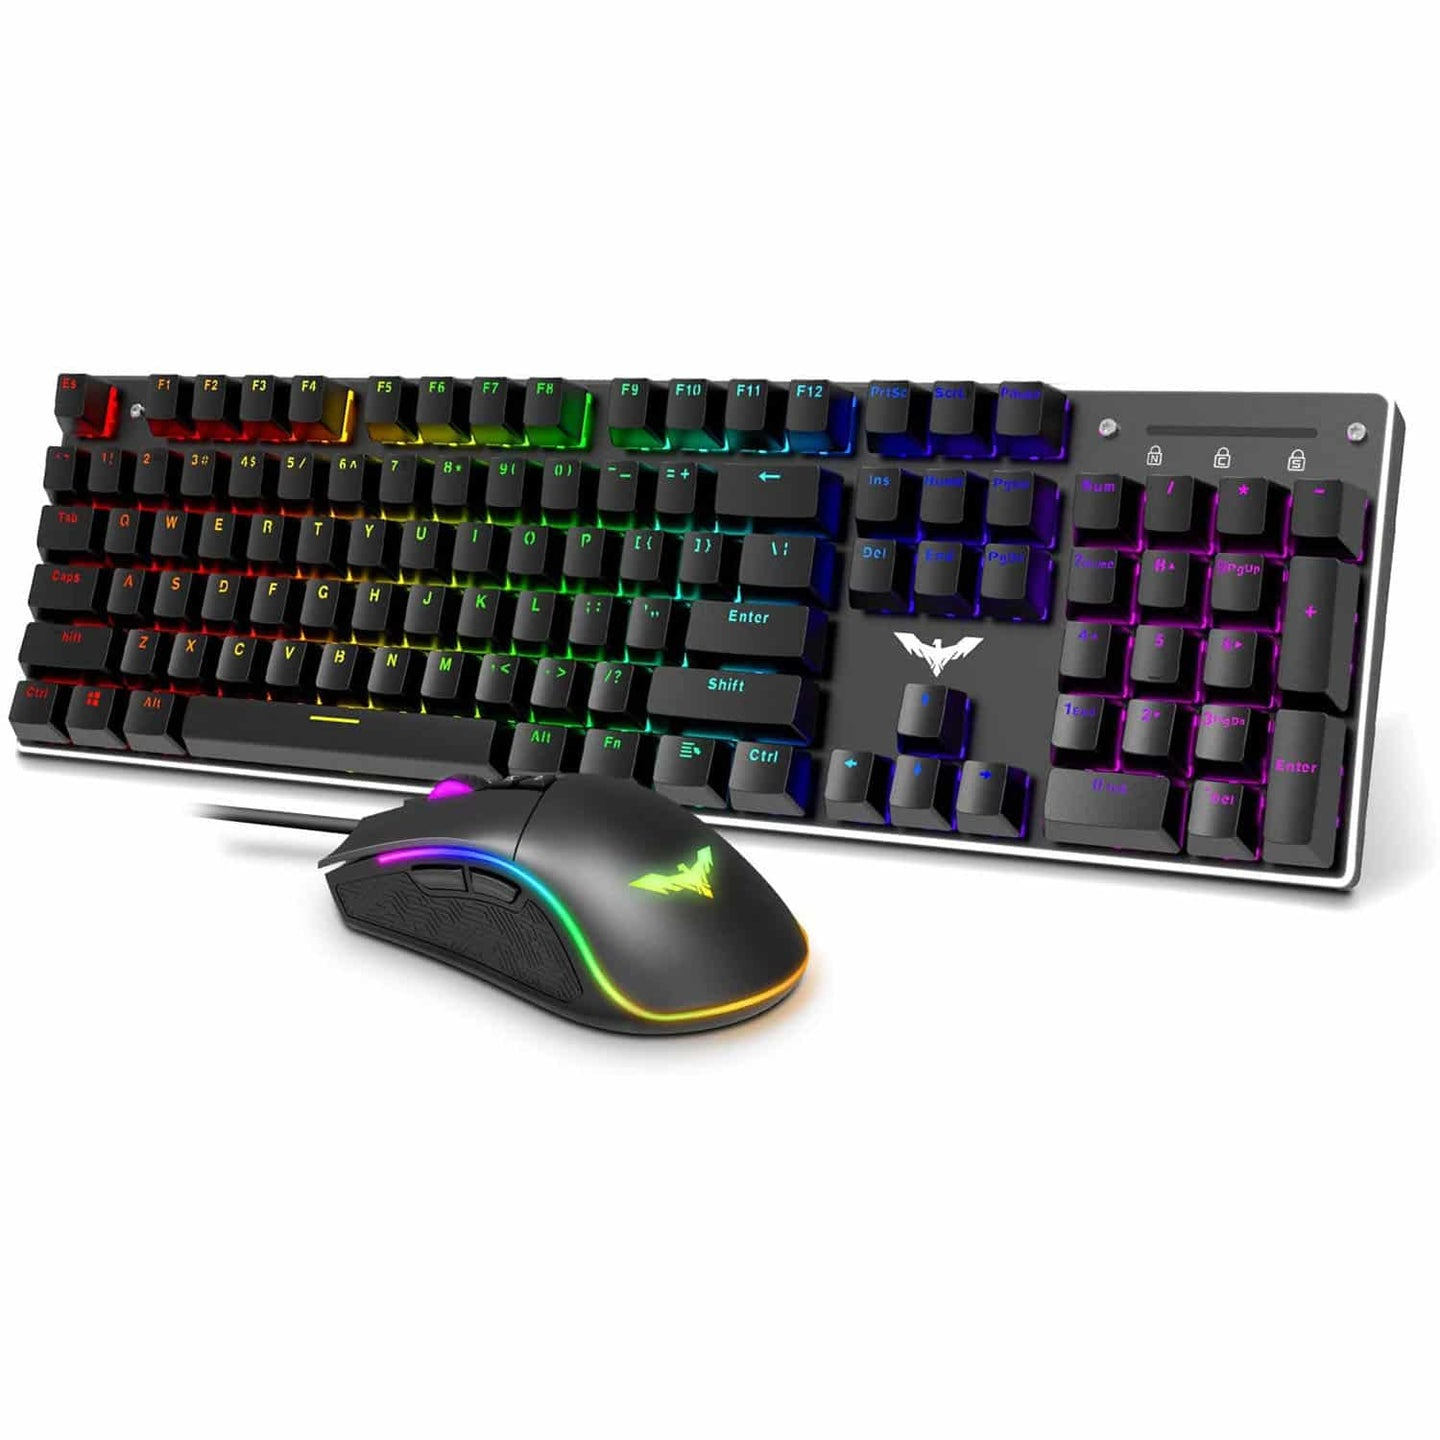 HAVIT KB393L Mechanical Gaming Keyboard and Mouse Combo 104 Keys with Rainbow Backlit